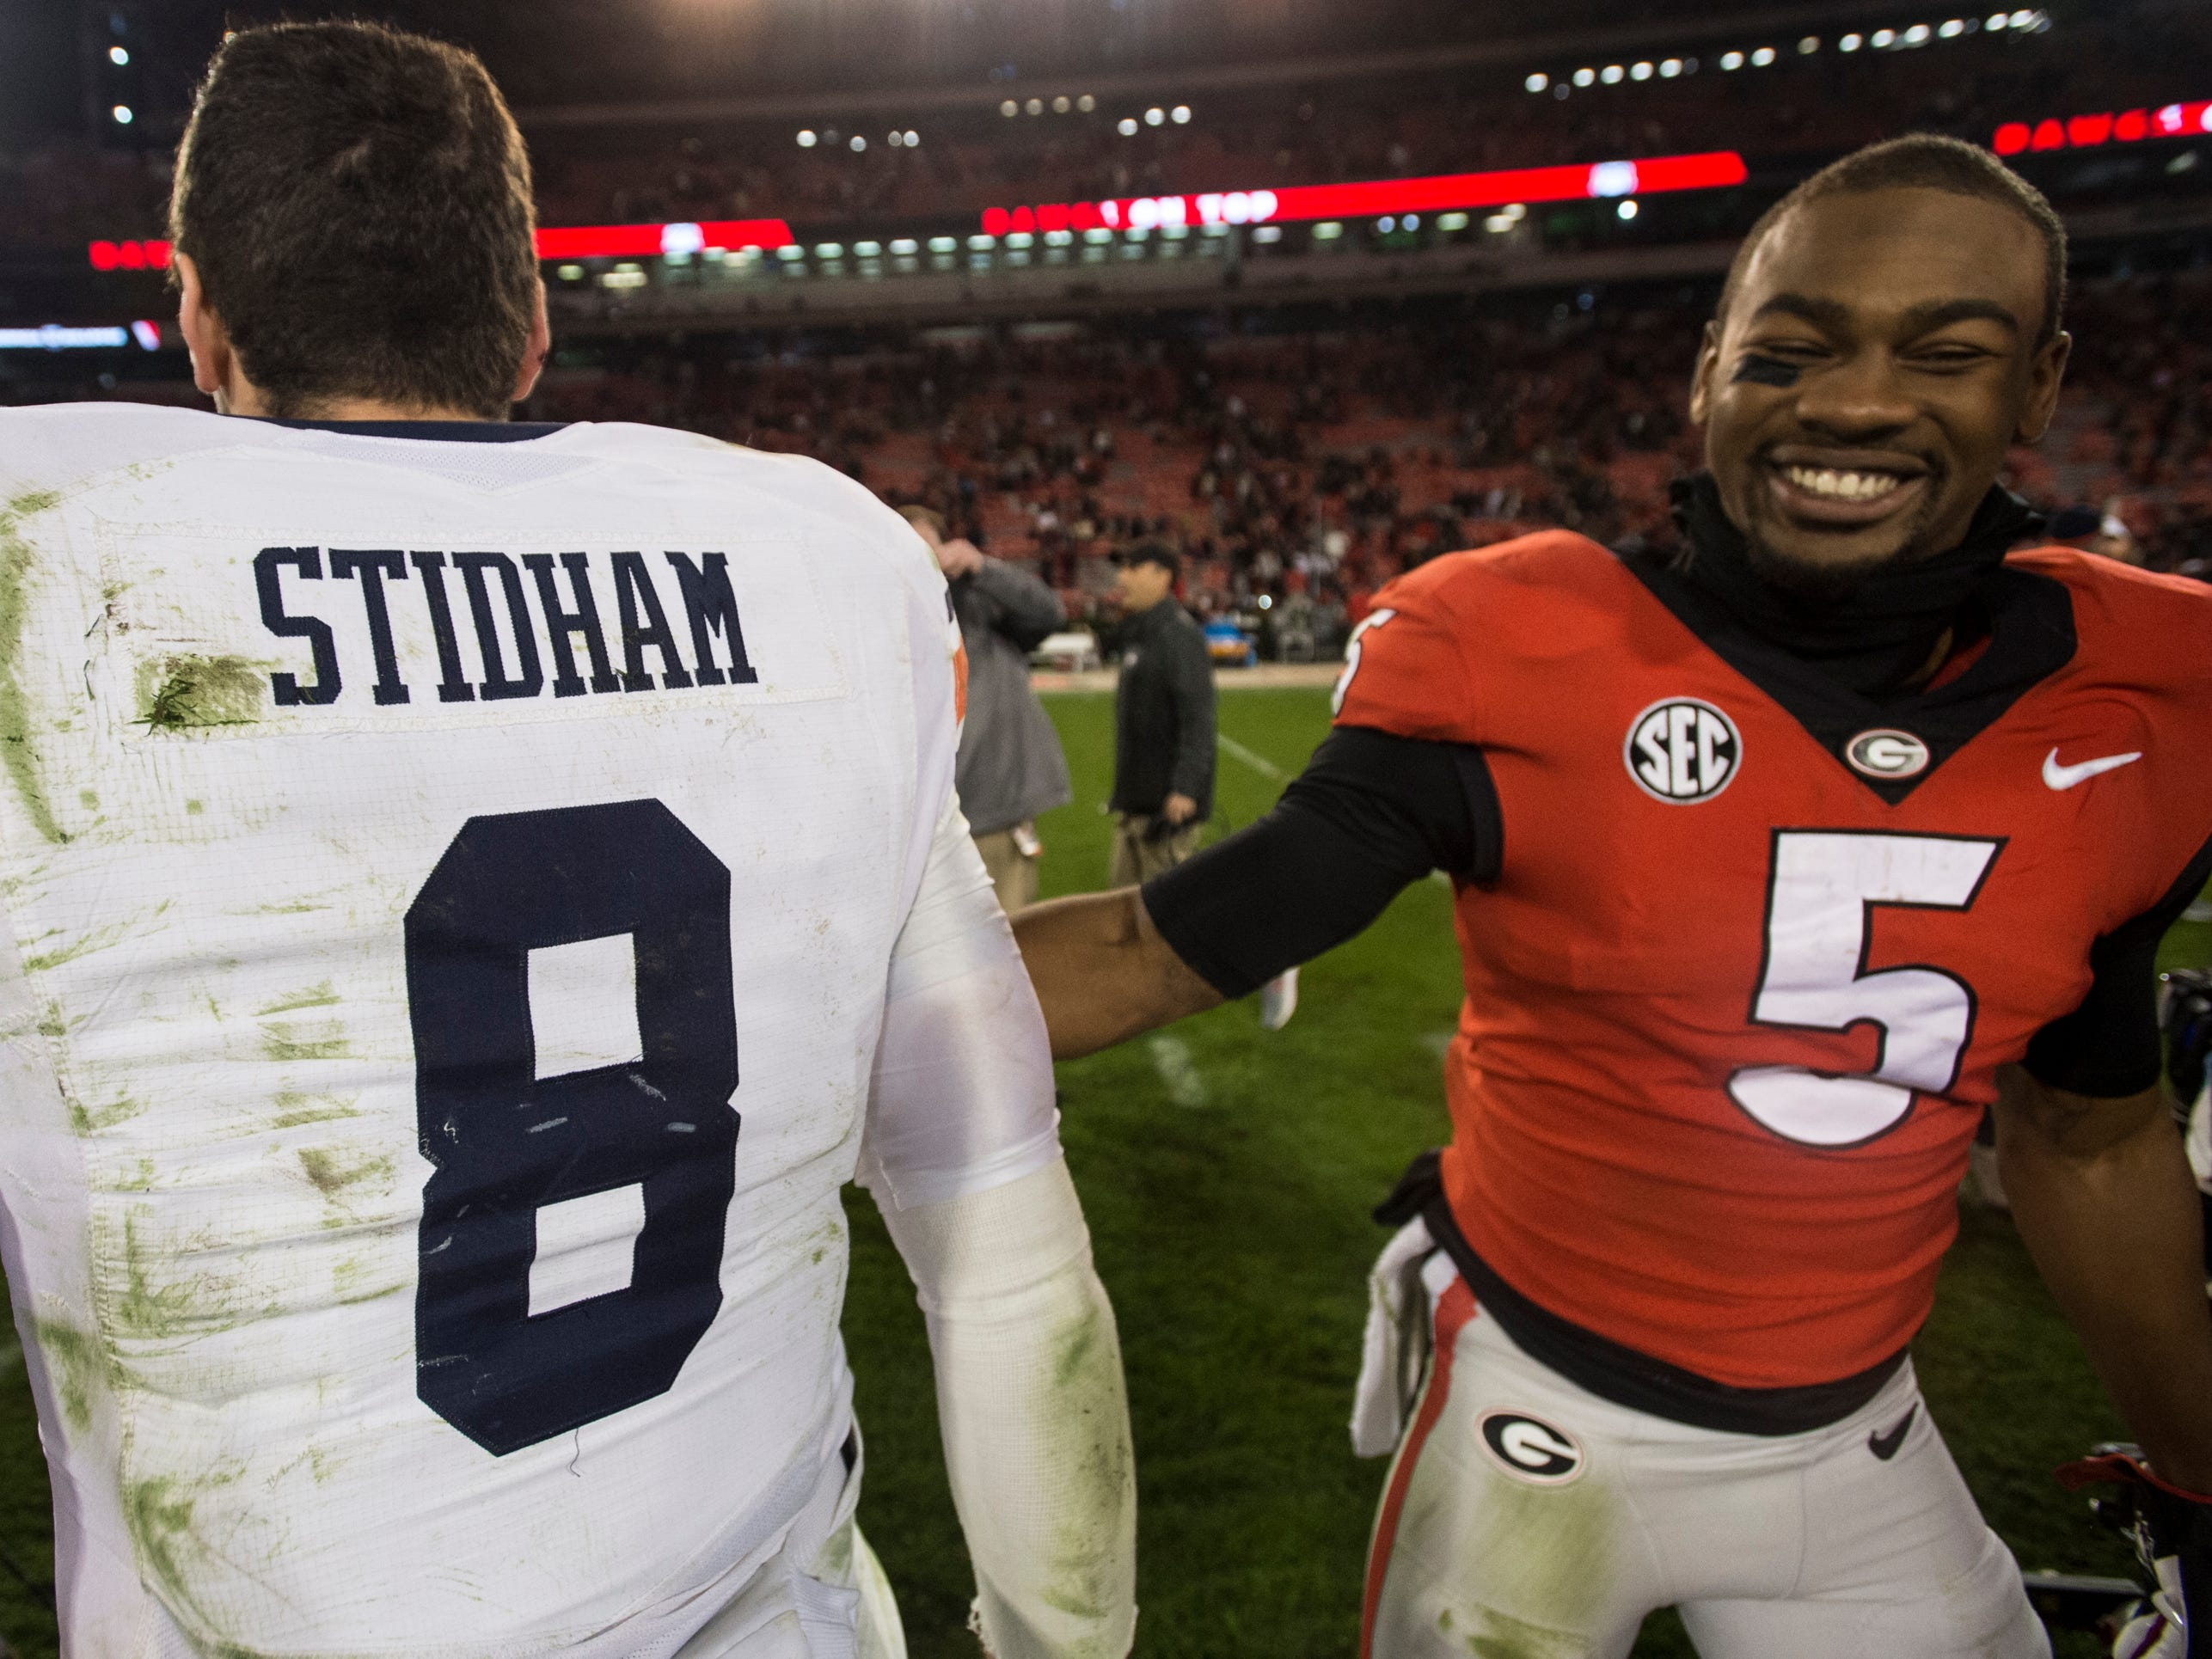 Auburn quarterback Jarrett Stidham (8) and Georgia wide receiver Terry Godwin (5) shake hands after the game at Sanford Stadium in Athens, Ga., on Saturday, Nov. 10, 2018. Georgia defeated Auburn 27-10.